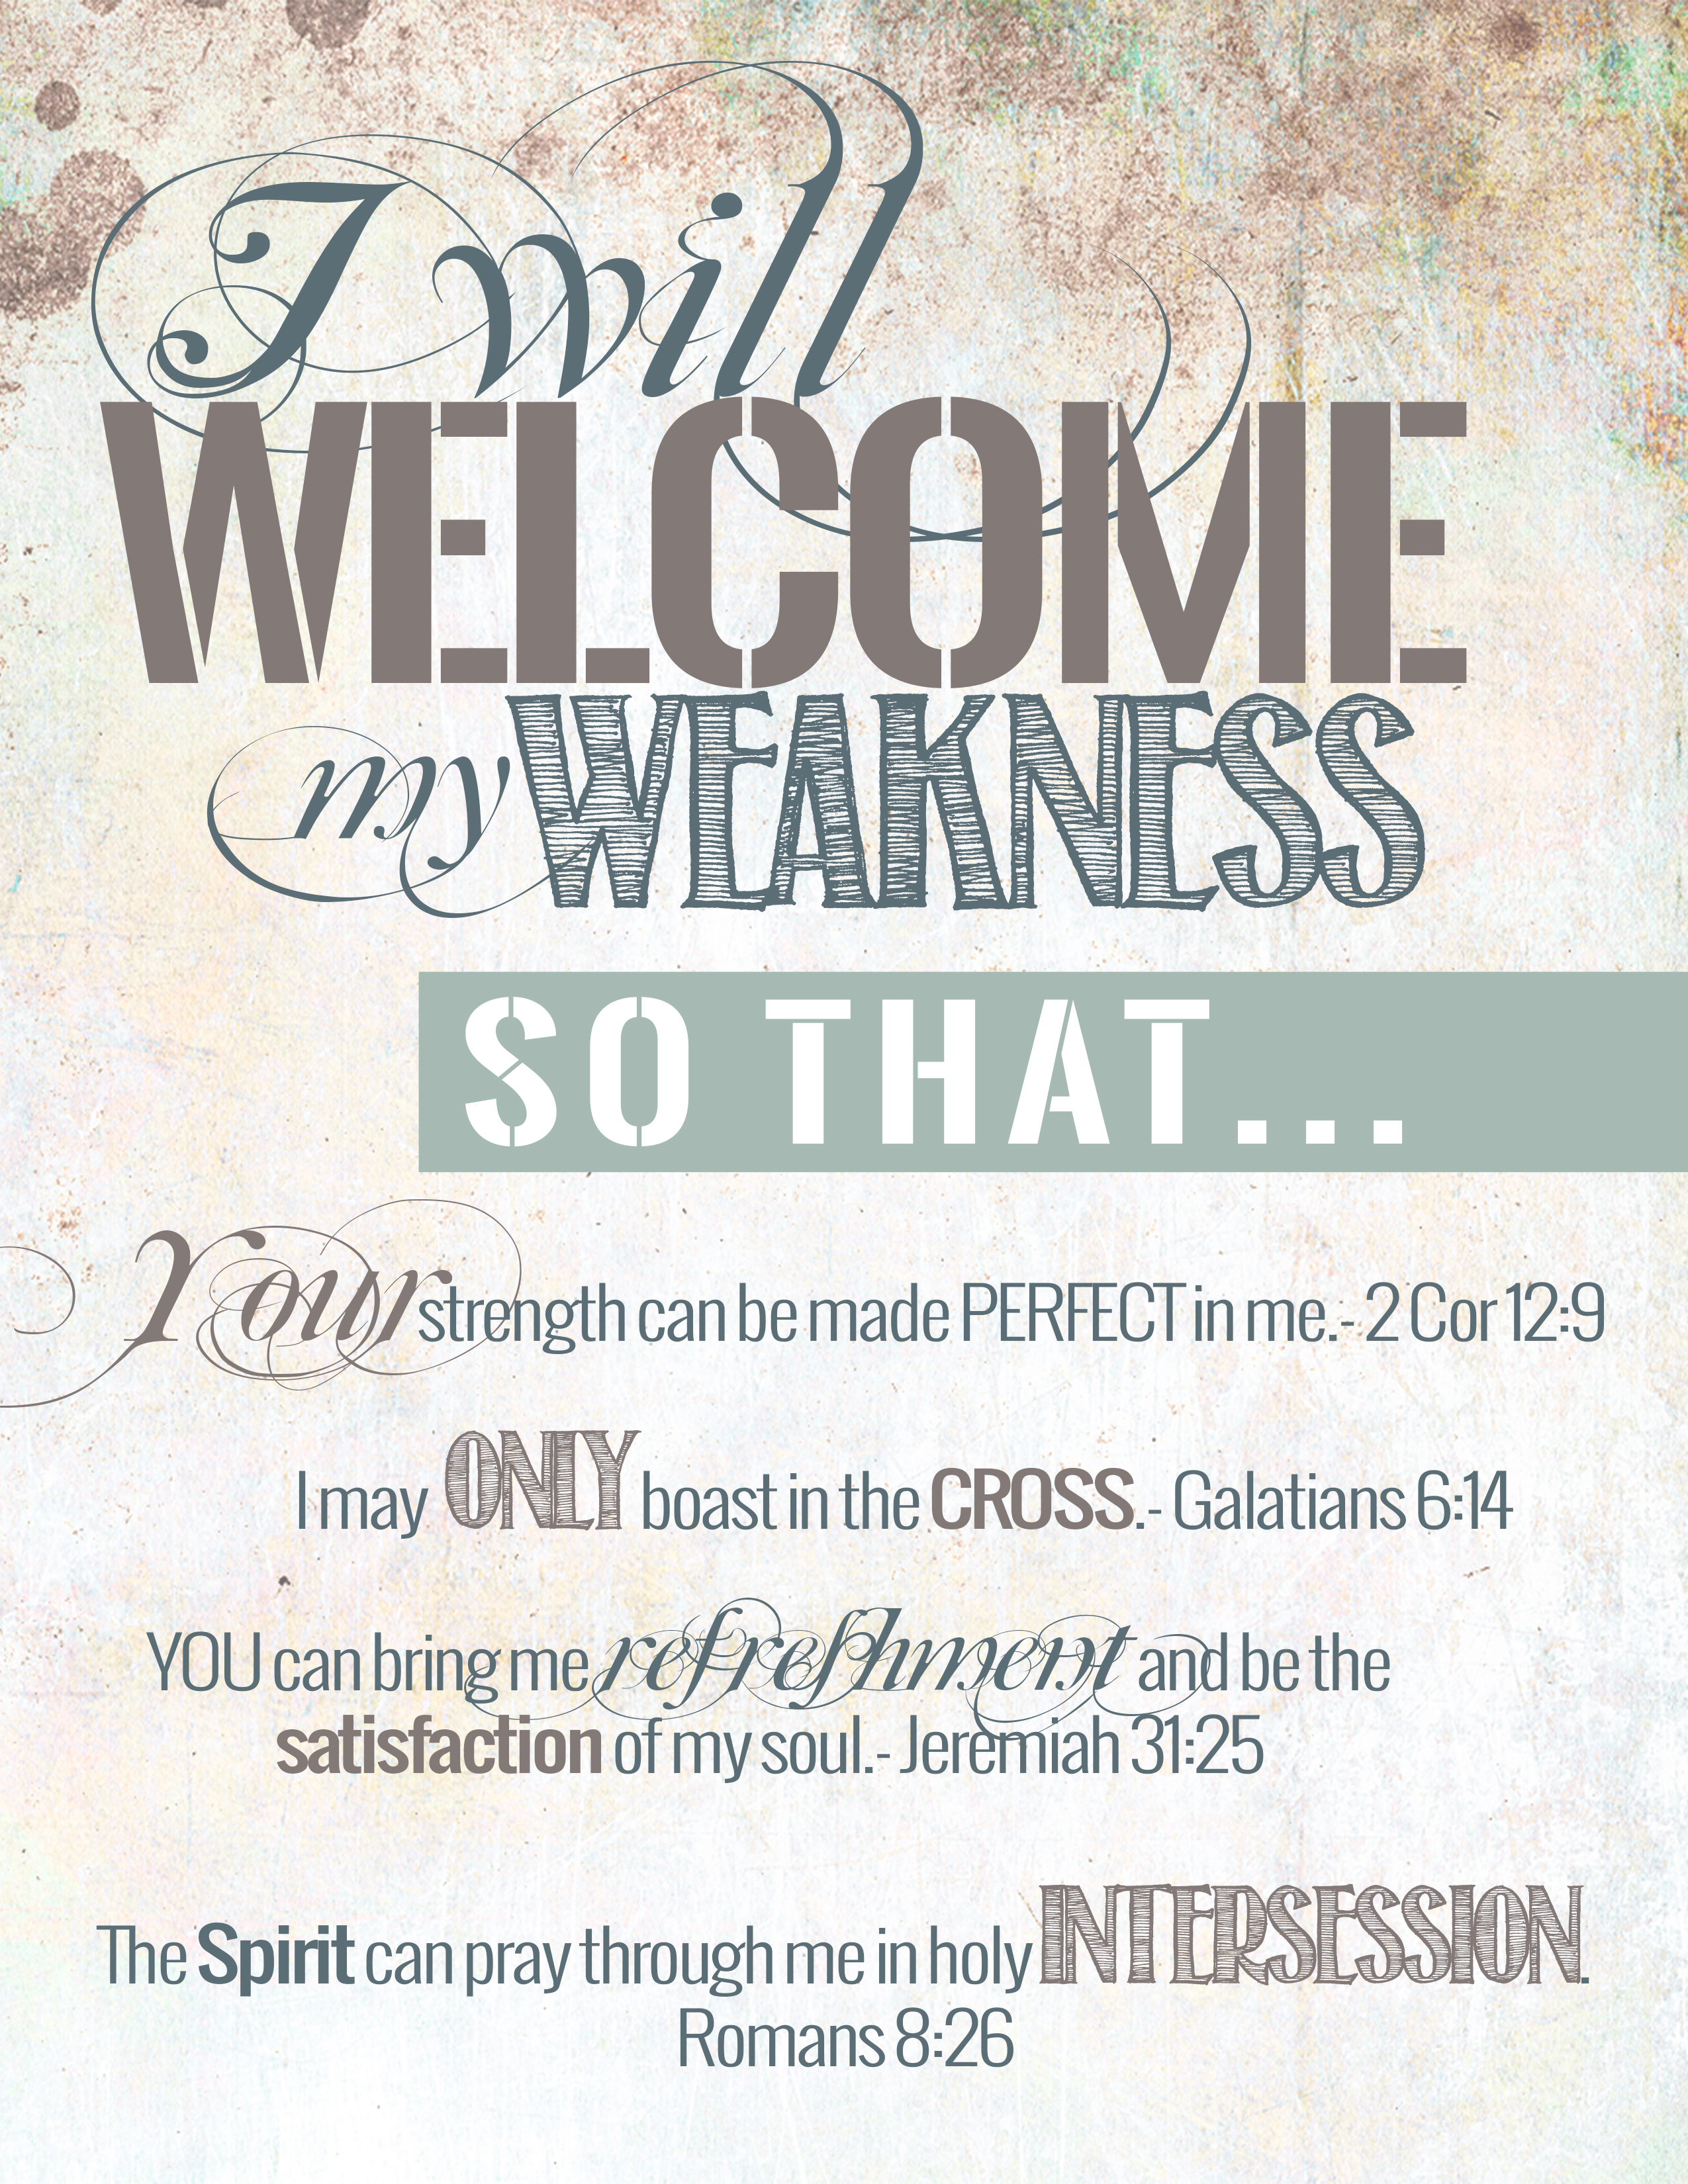 welcome weakness